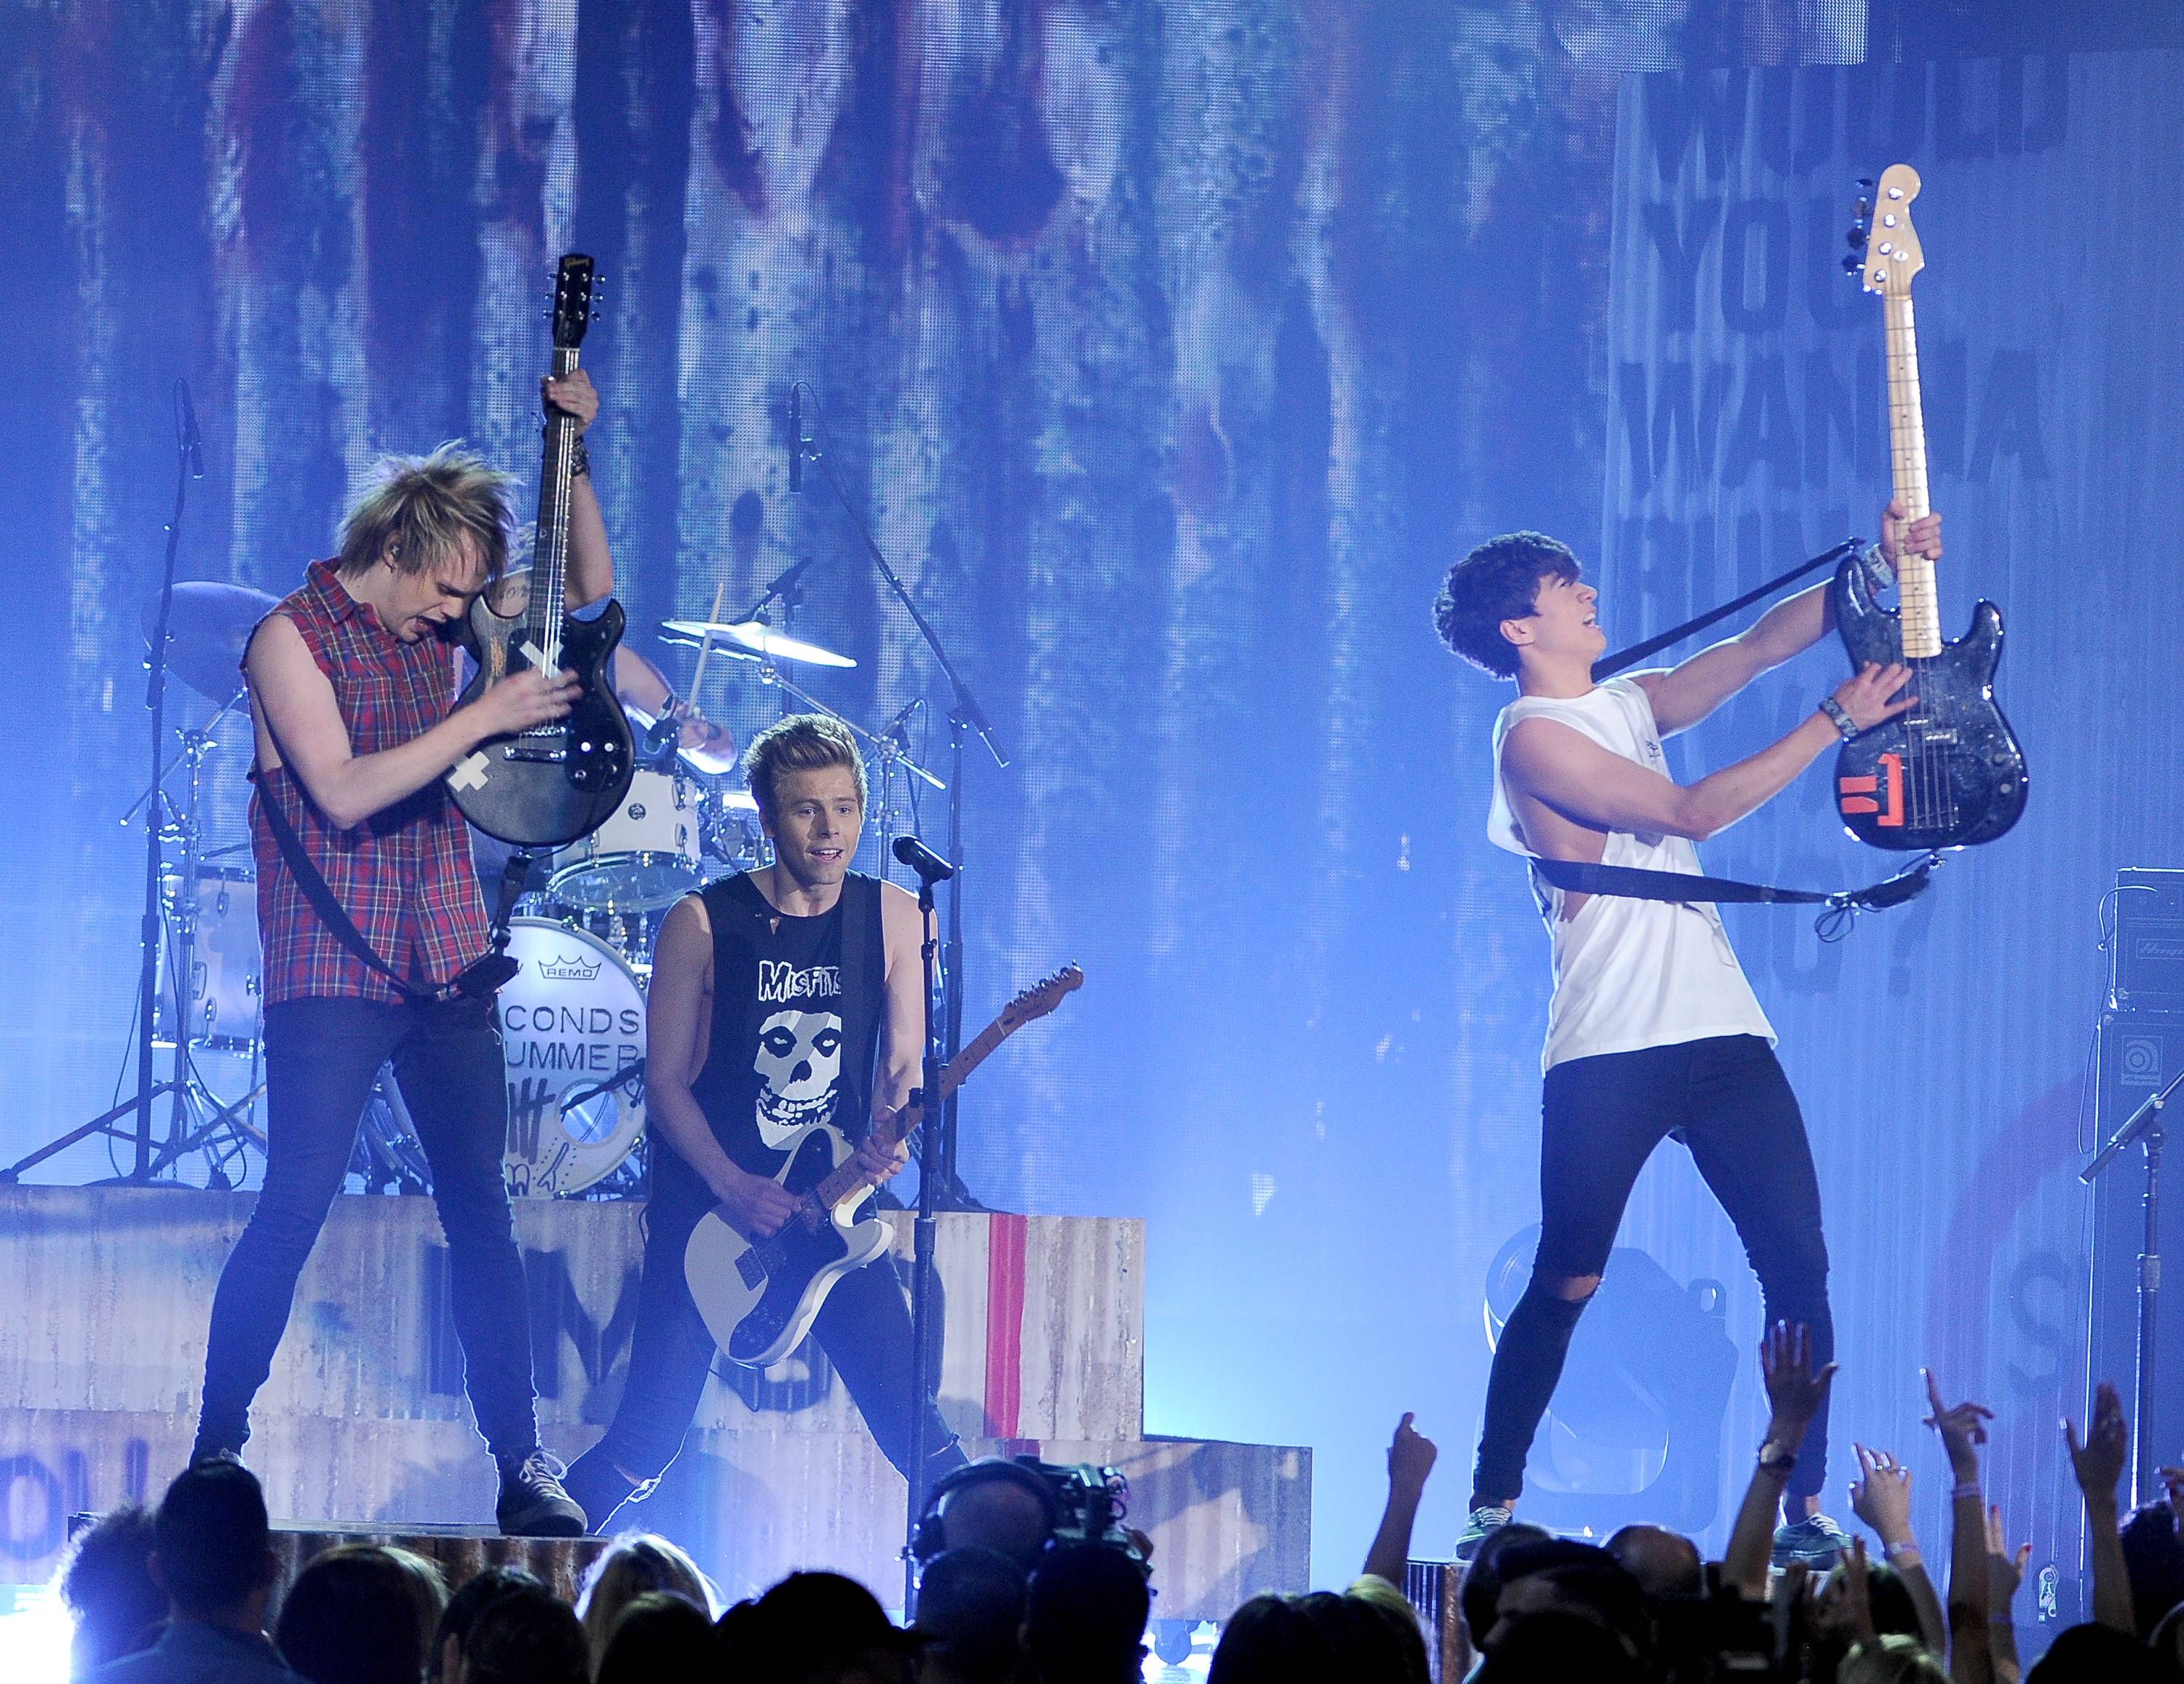 Michael Clifford, from left, Luke Hemmings and Calum Hood, of the musical group 5 Seconds of Summer, perform on stage at the Billboard Music Awards at the MGM Grand Garden Arena on Sunday, May 18, 2014, in Las Vegas.